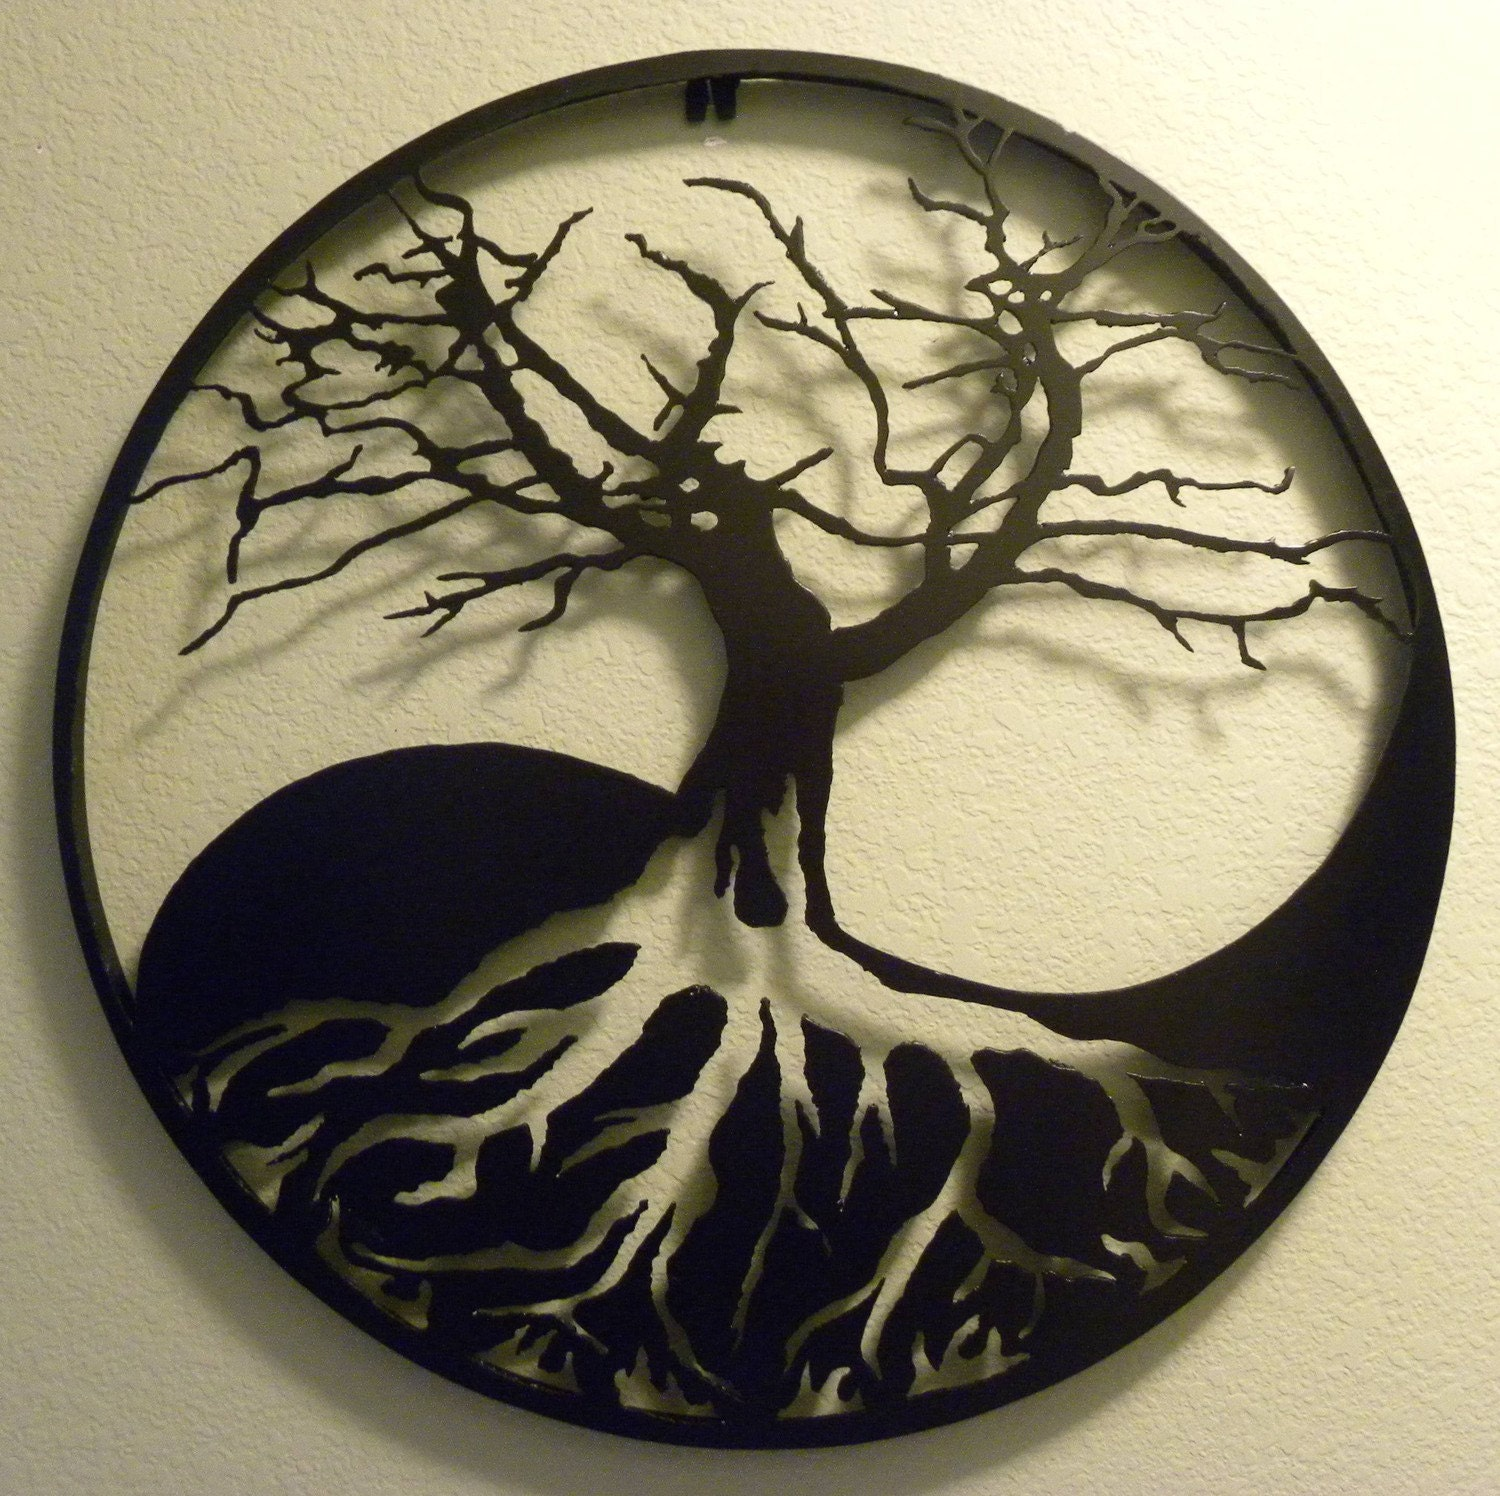 yin yang tree of life metal wall art. Black Bedroom Furniture Sets. Home Design Ideas